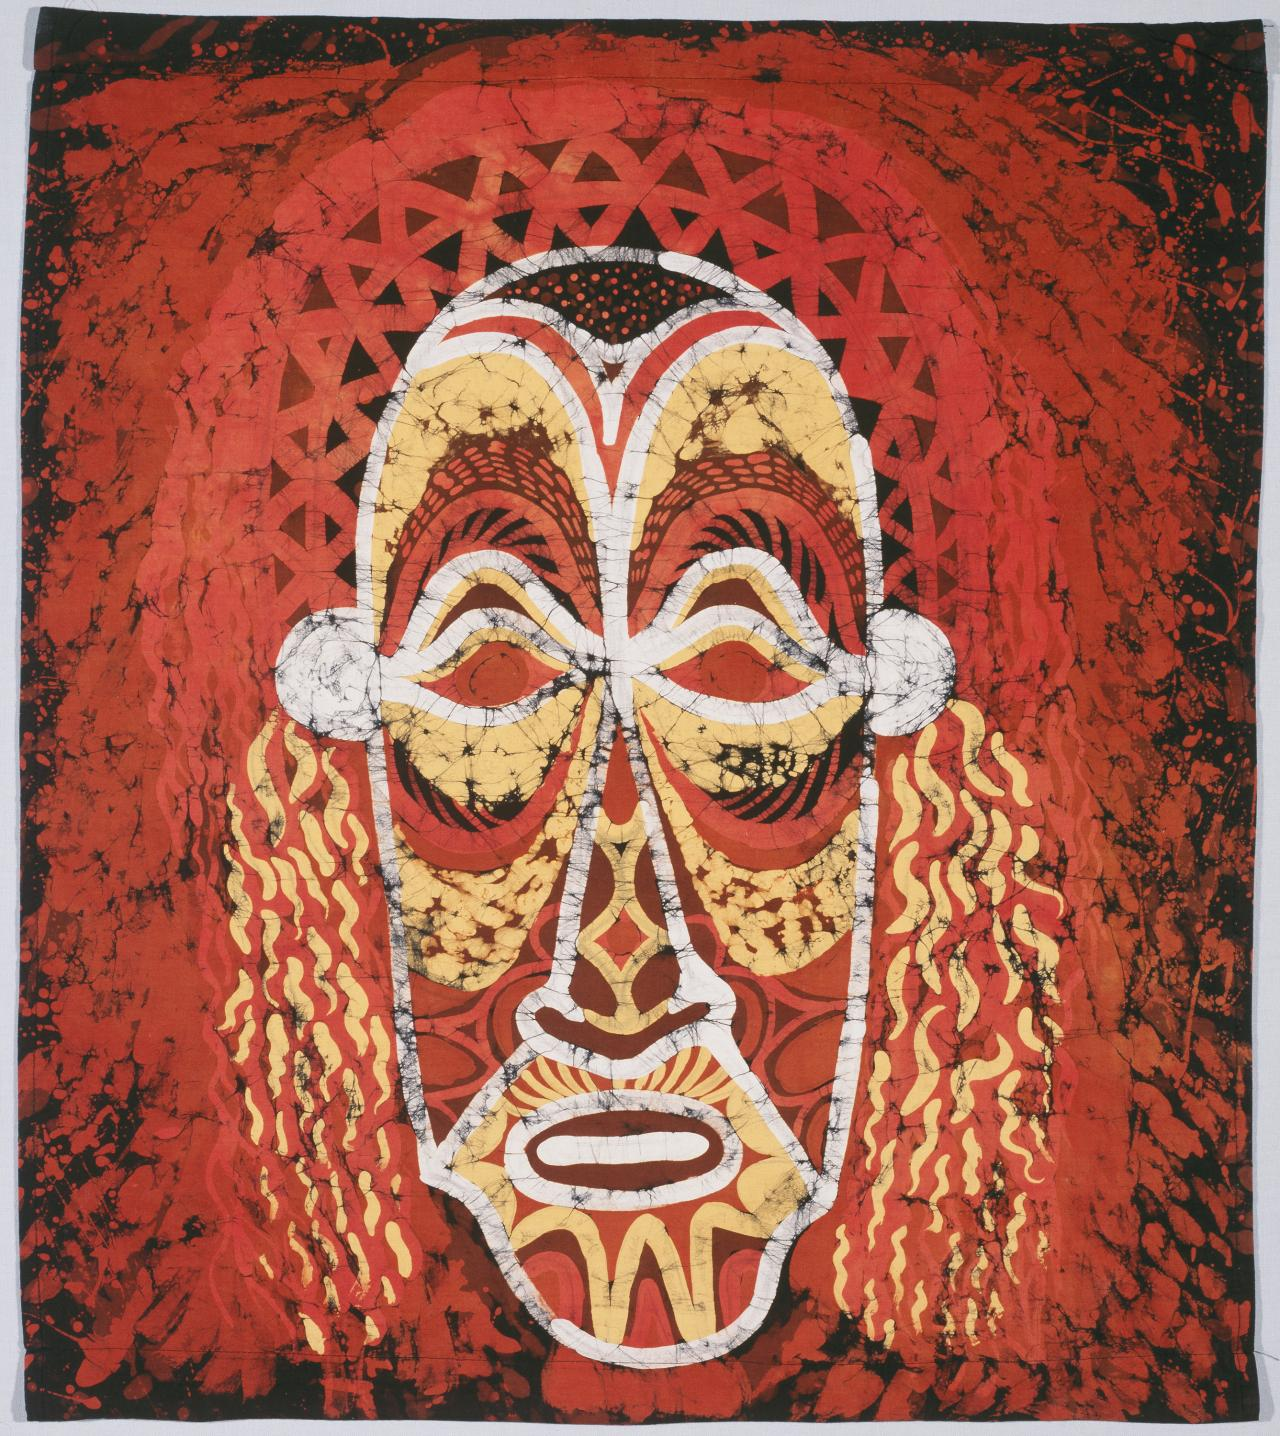 Island mask, fabric length